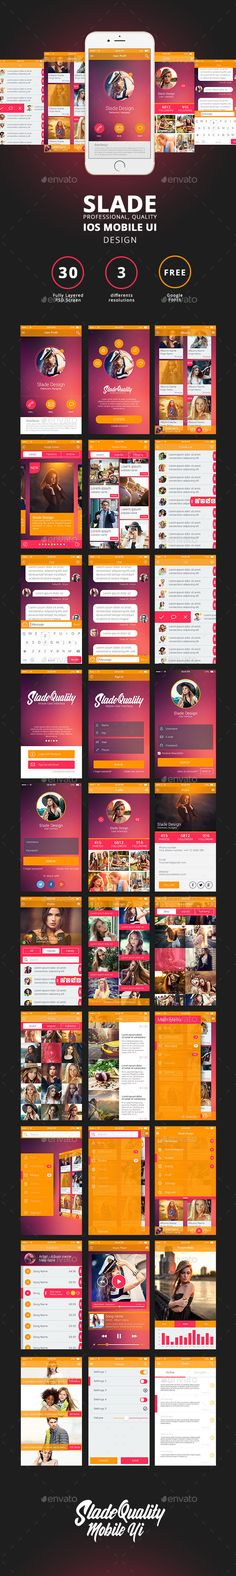 SLADE Professional Quality IOS mobile UI DESIGN - User Interfaces Web Elements